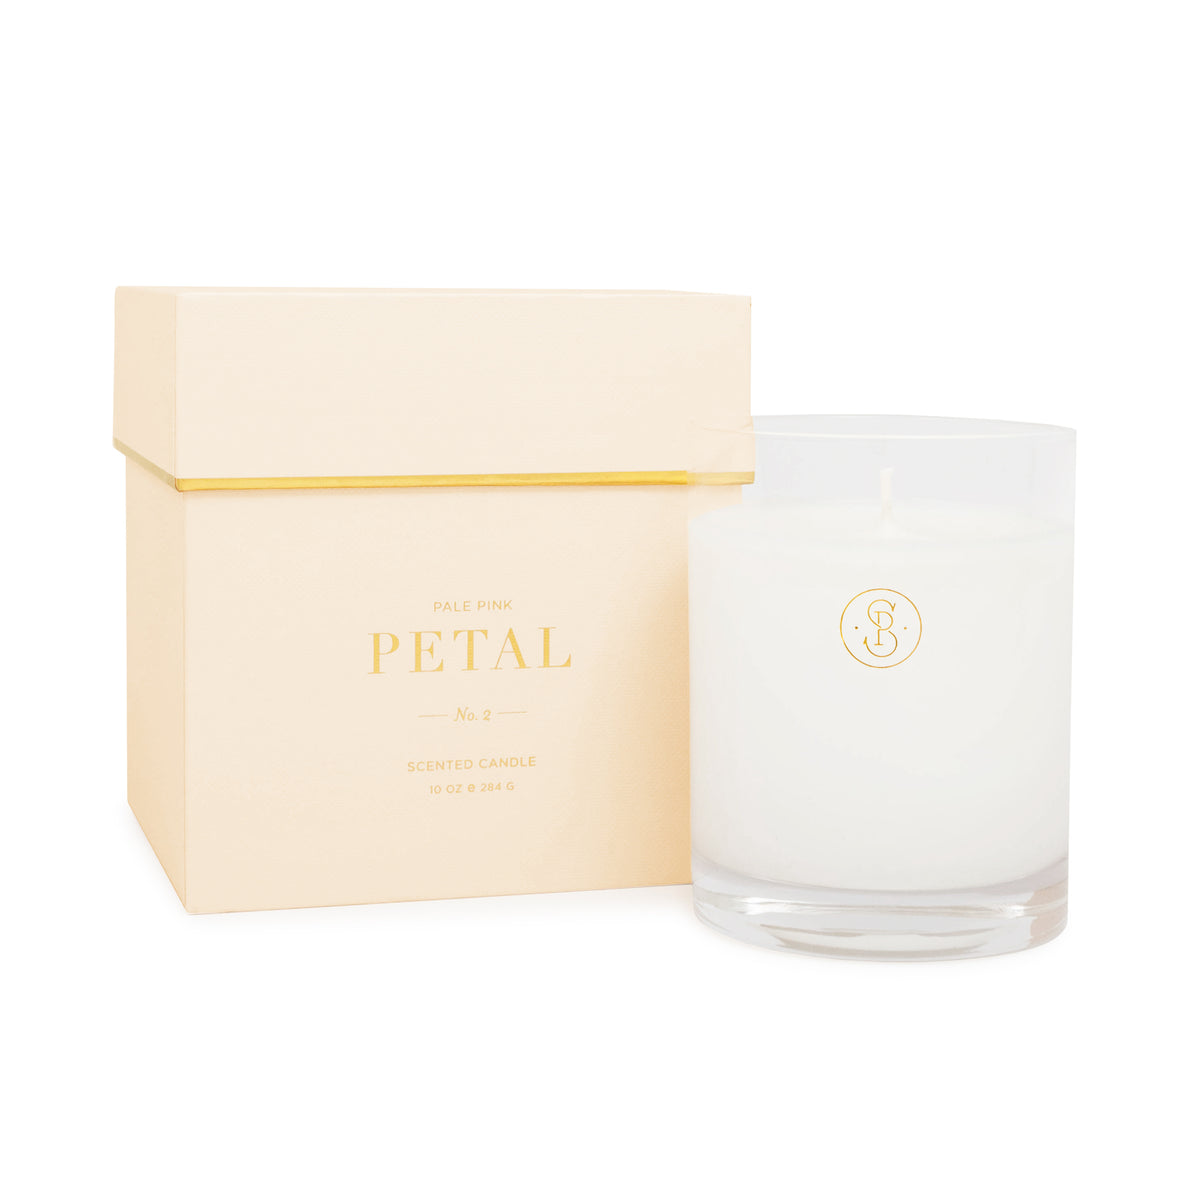 Glass candle next to pink candle box - pale pink petal scent